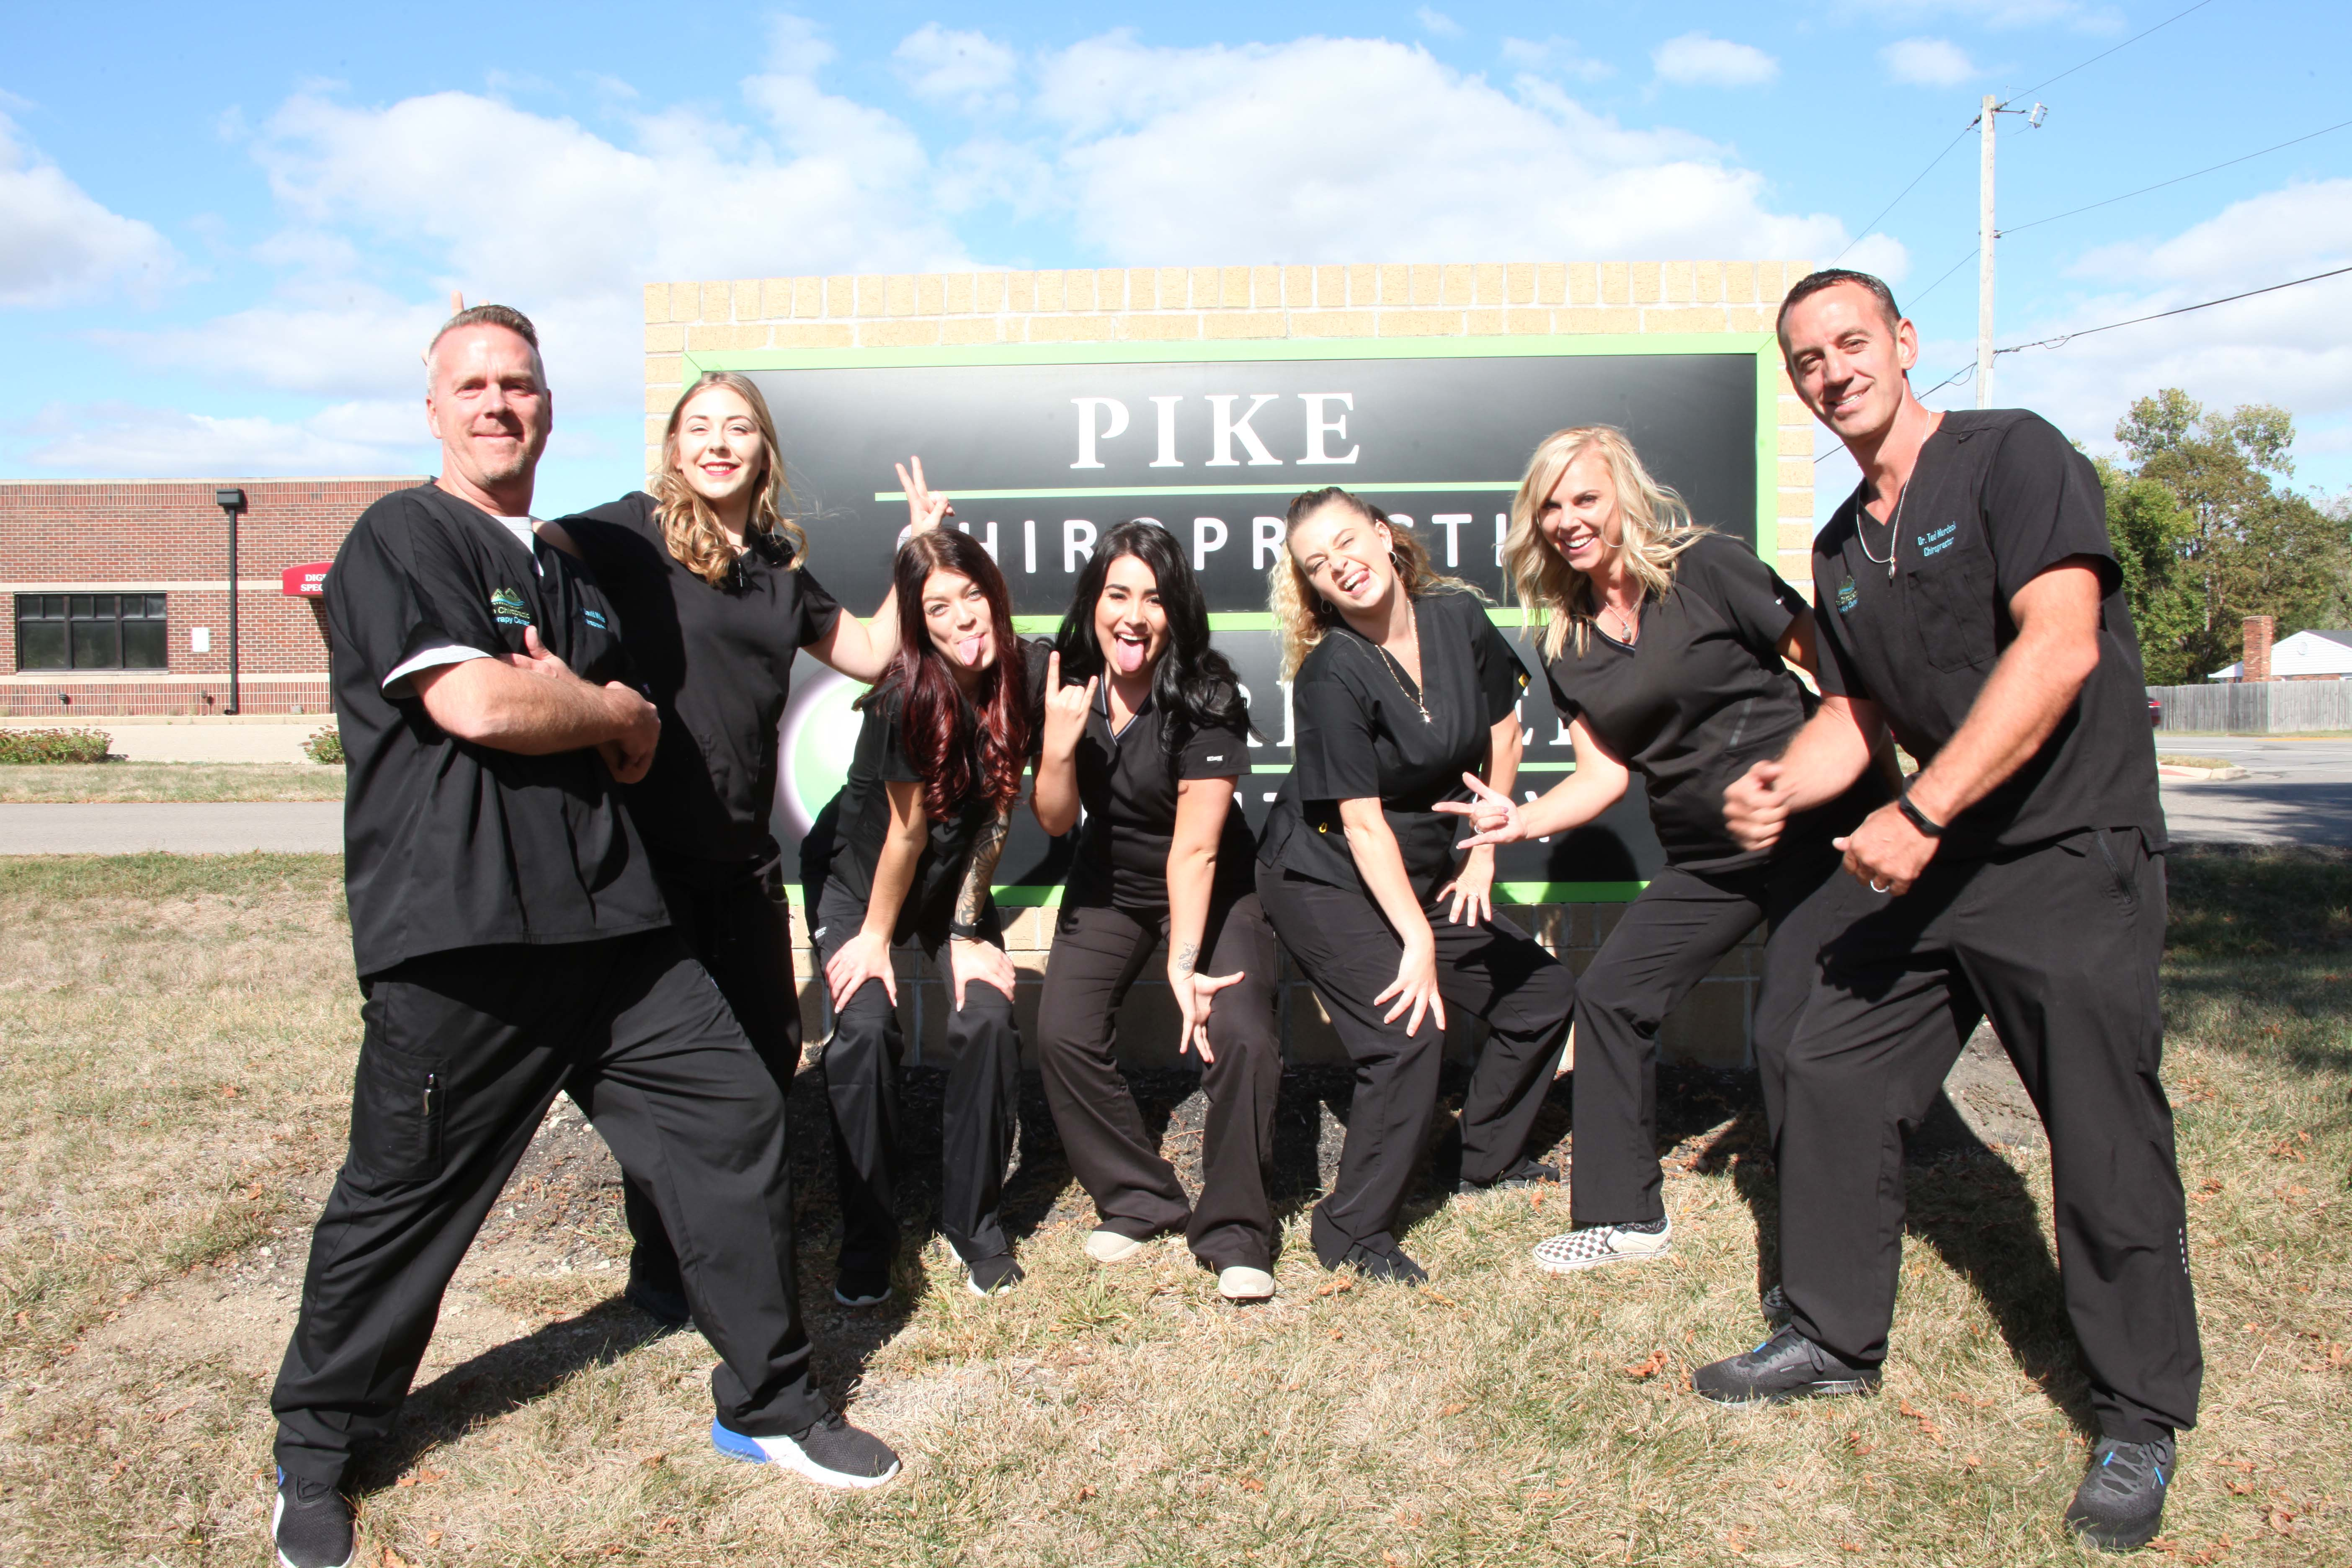 Pike Chiropractic Therapy Center Doctors and Staff